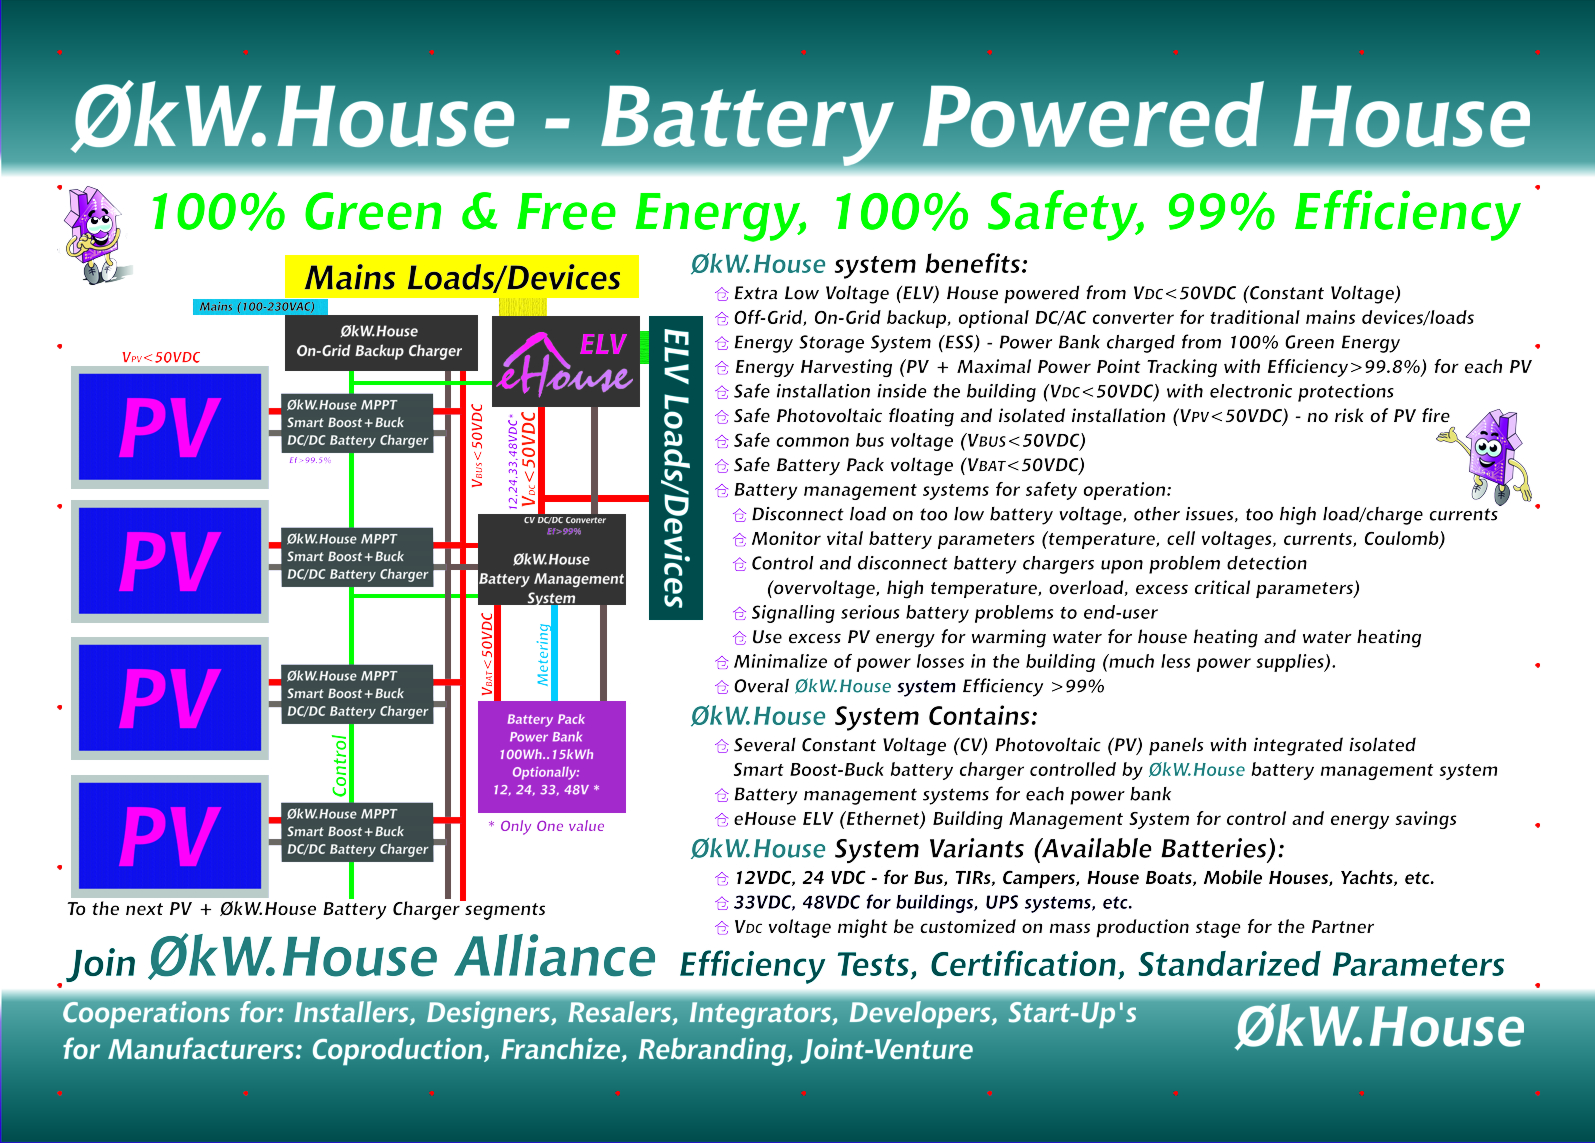 Electronic house powered from batteries - 100Wh..15kWh, Extra Low Voltage (ELV <50VAC), Off-Grid/On-Grid installations